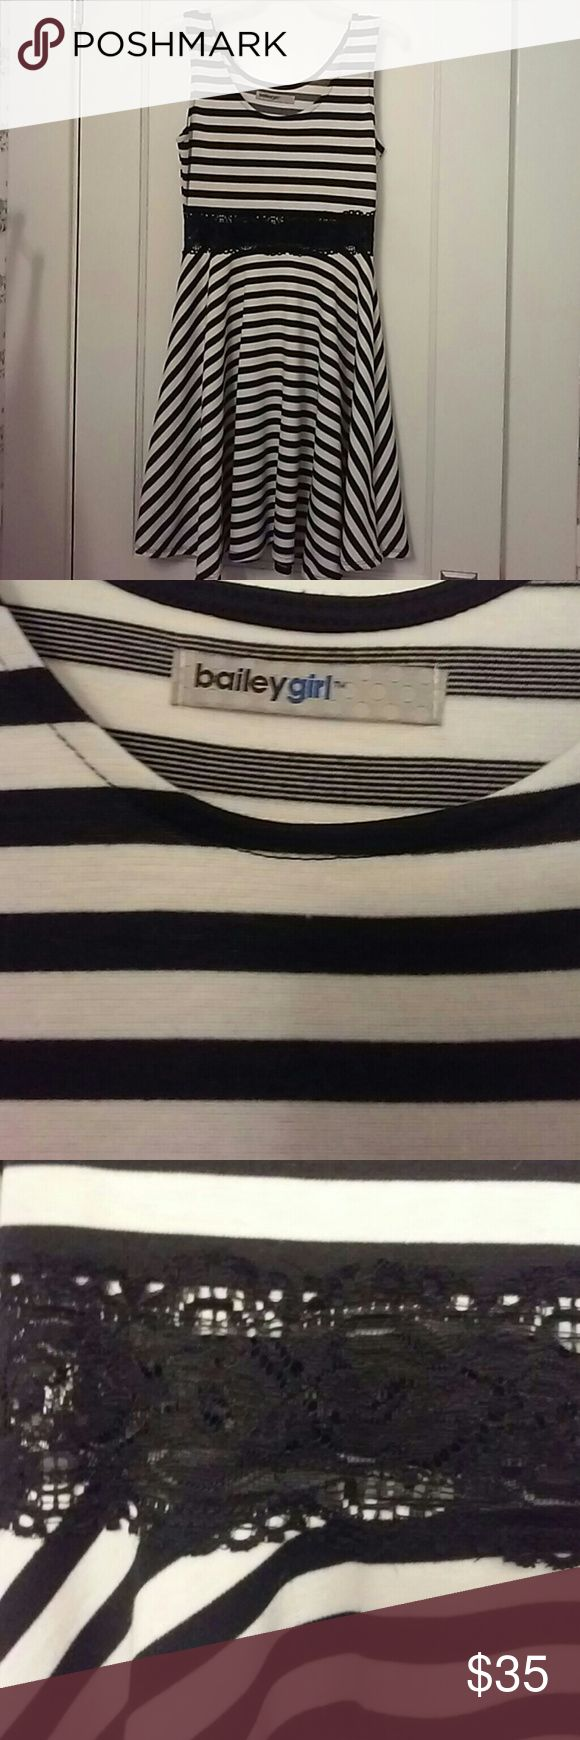 Baileygirl stripped junior dress size M Very nice summer dress. Black and white stripes. Slip over head. CHECK out the waistline...see through black lace with ample stretch. Measurement from shoulder to waist is 34 inches. 90%polyester and 10% spandex. Hand wash...already laundered. Gently used. Bailygirl Dresses Midi